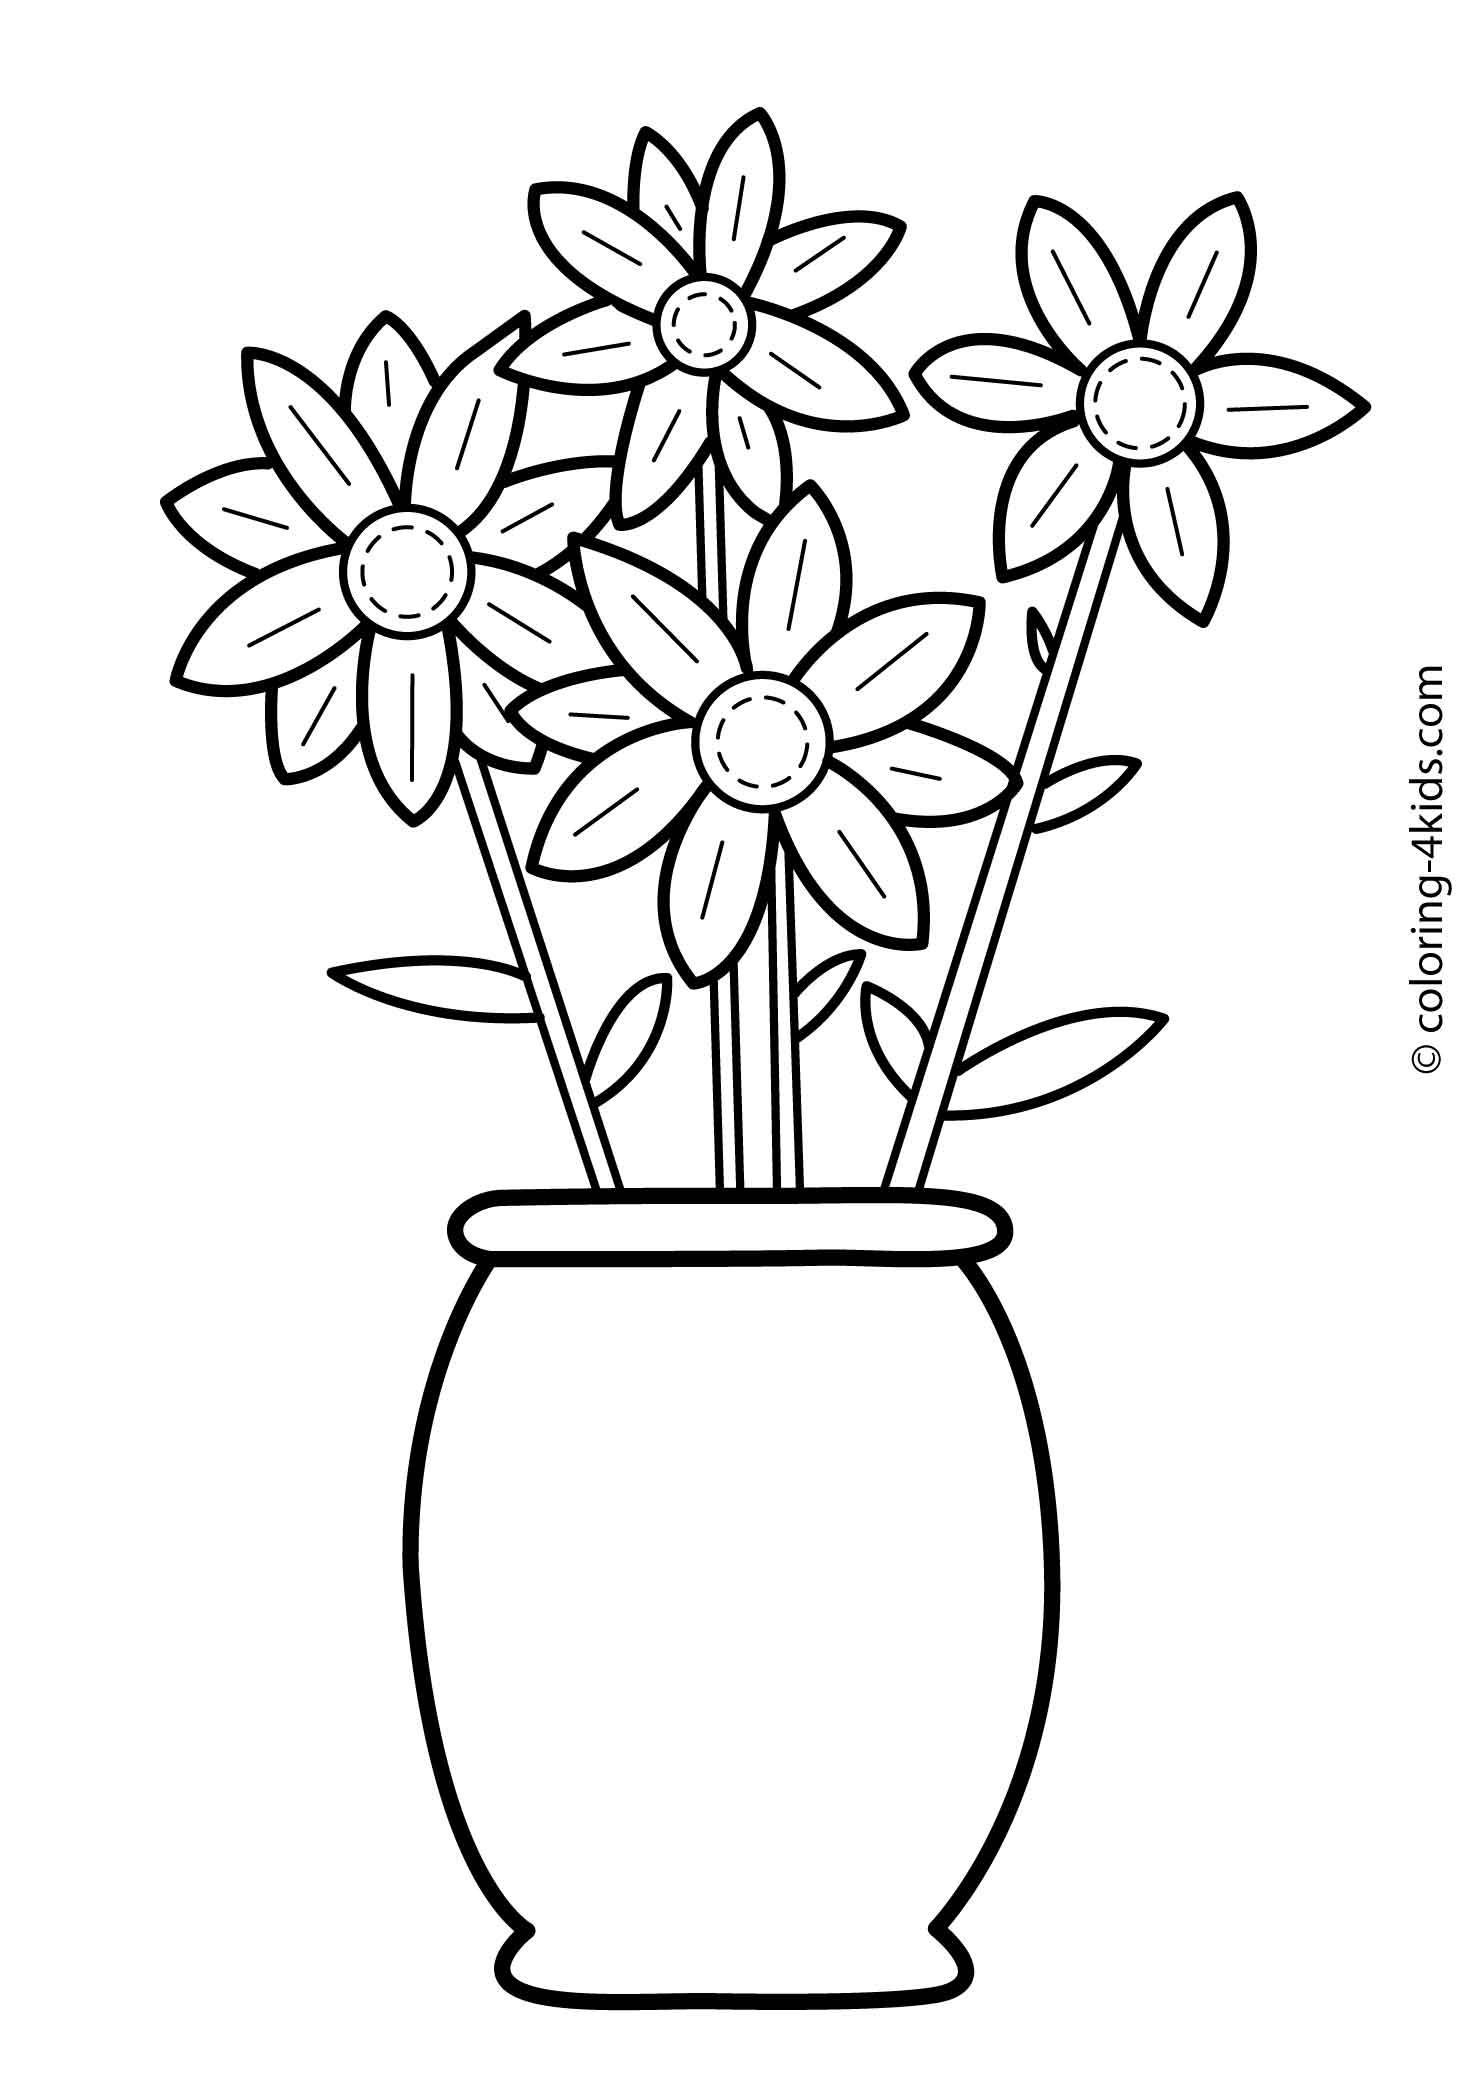 Flowers coloring pages for kids printable emadepäev